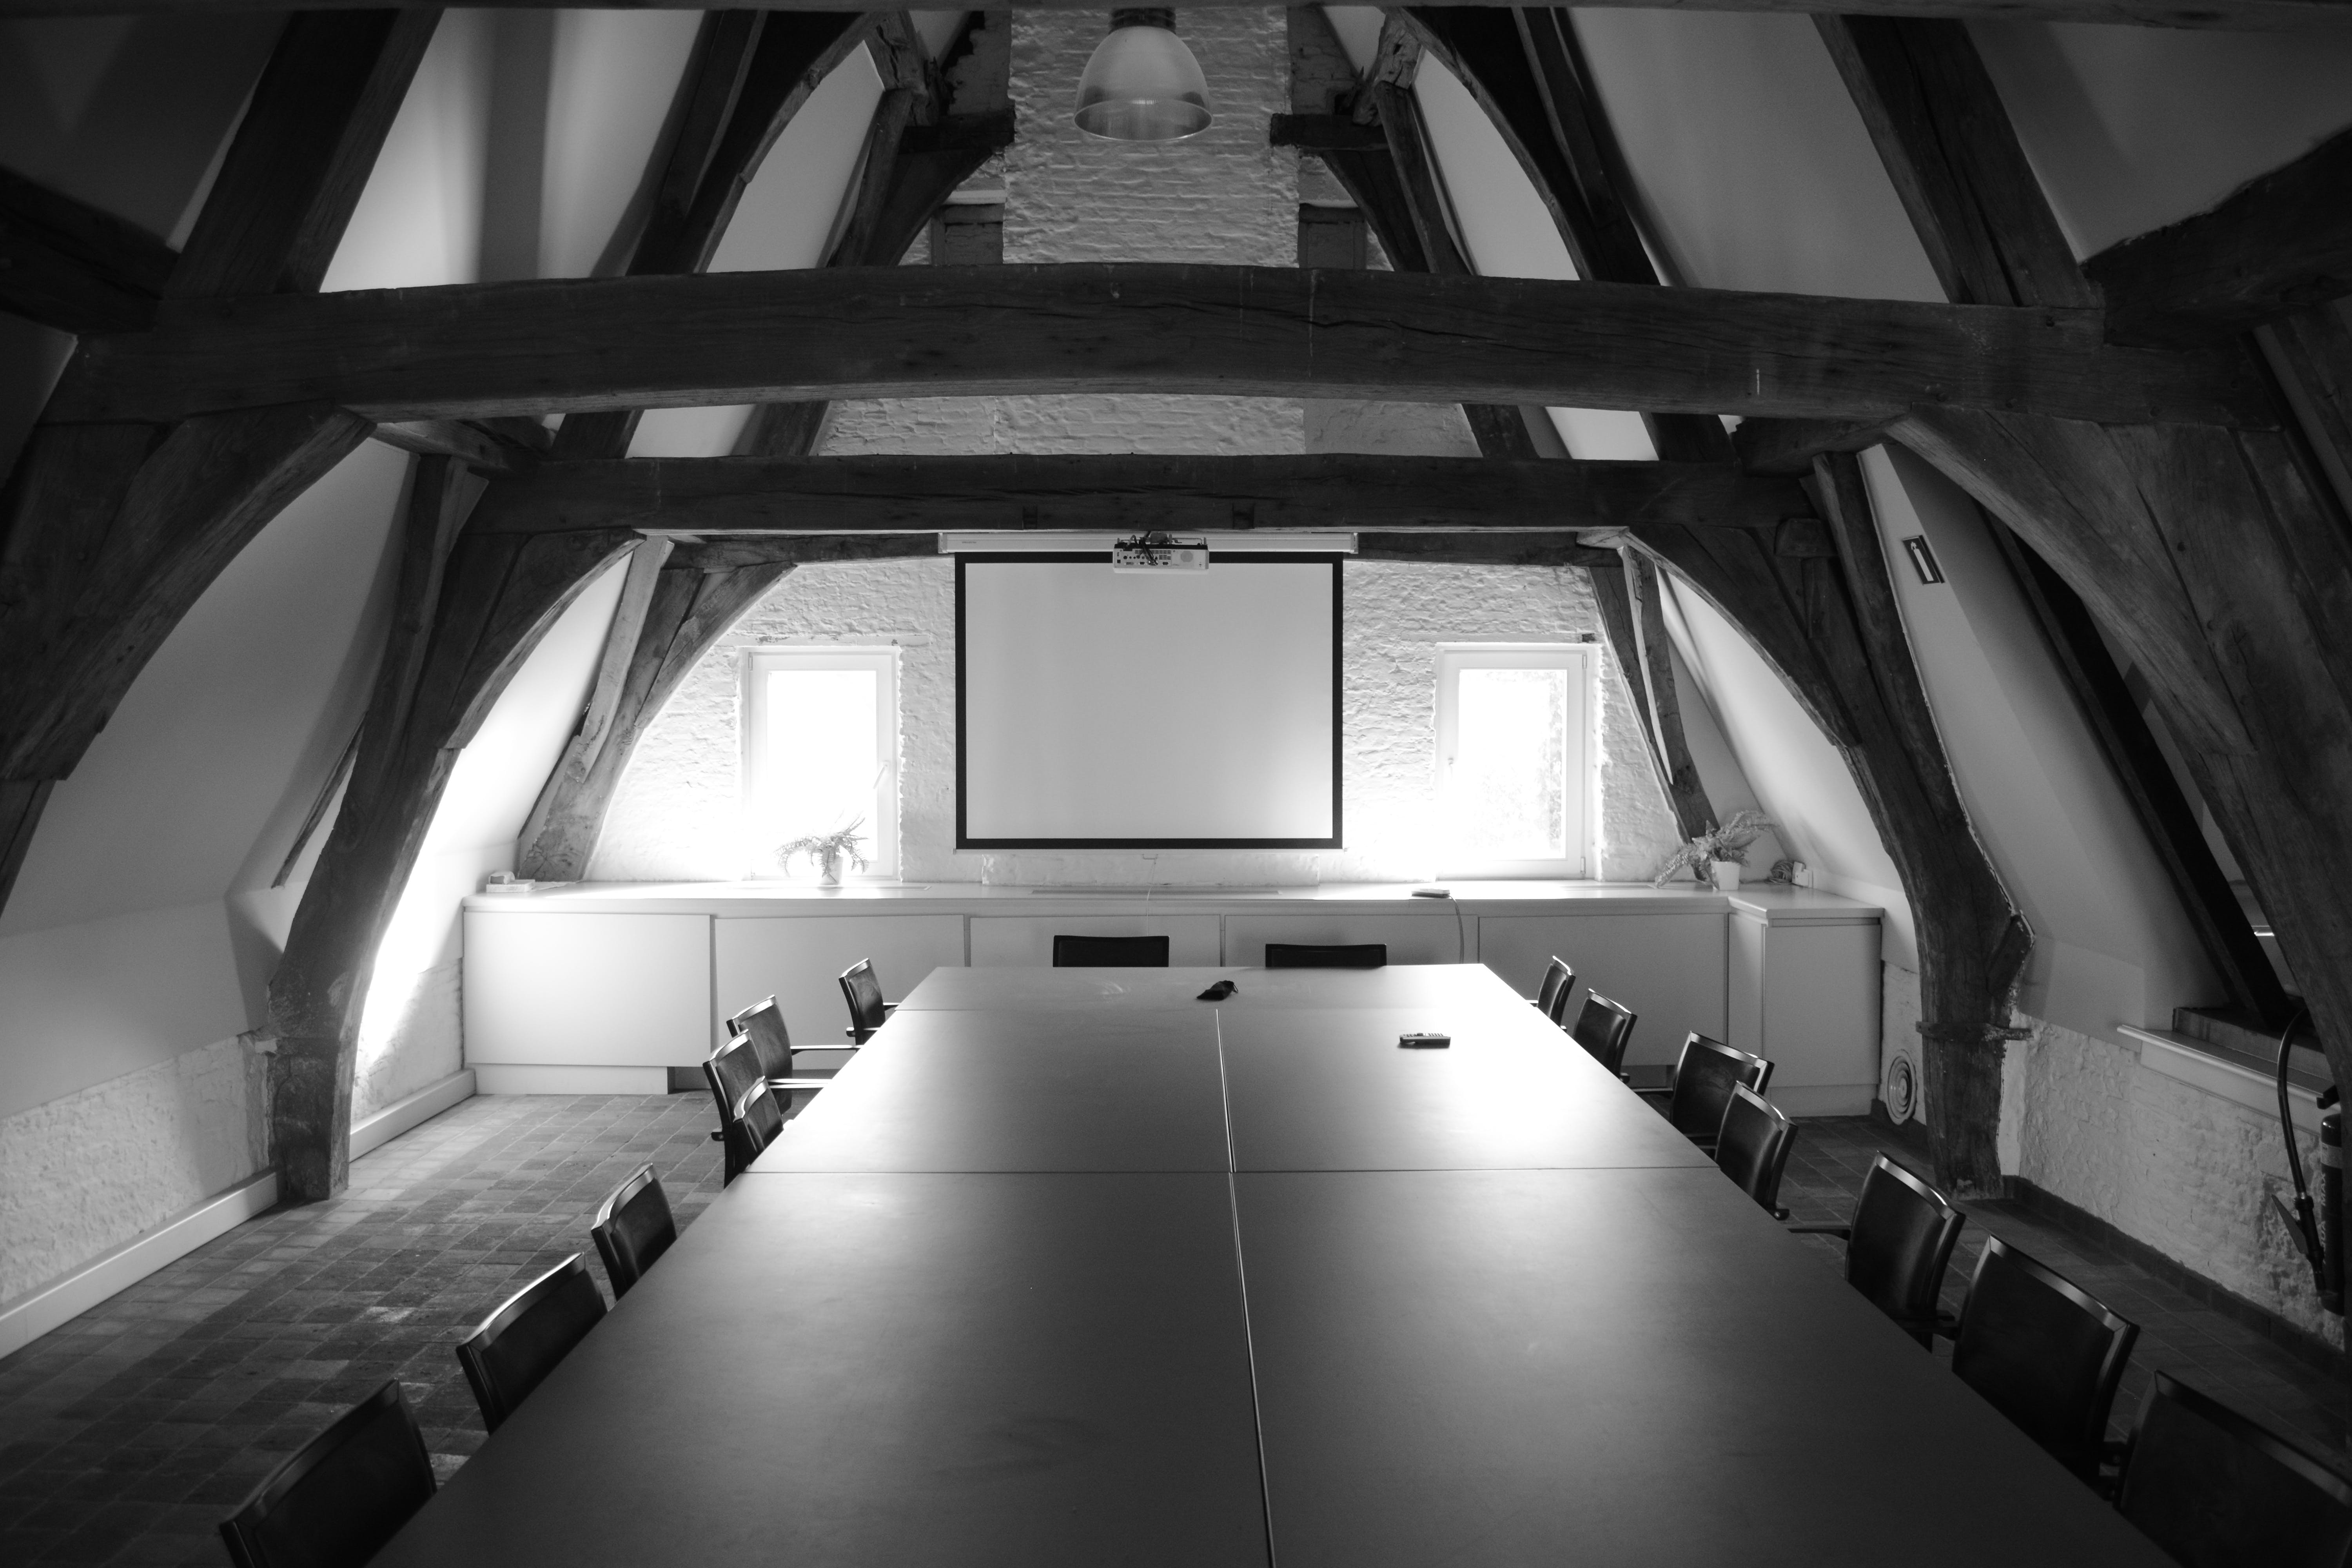 Free stock photo of building, table, architecture, conference